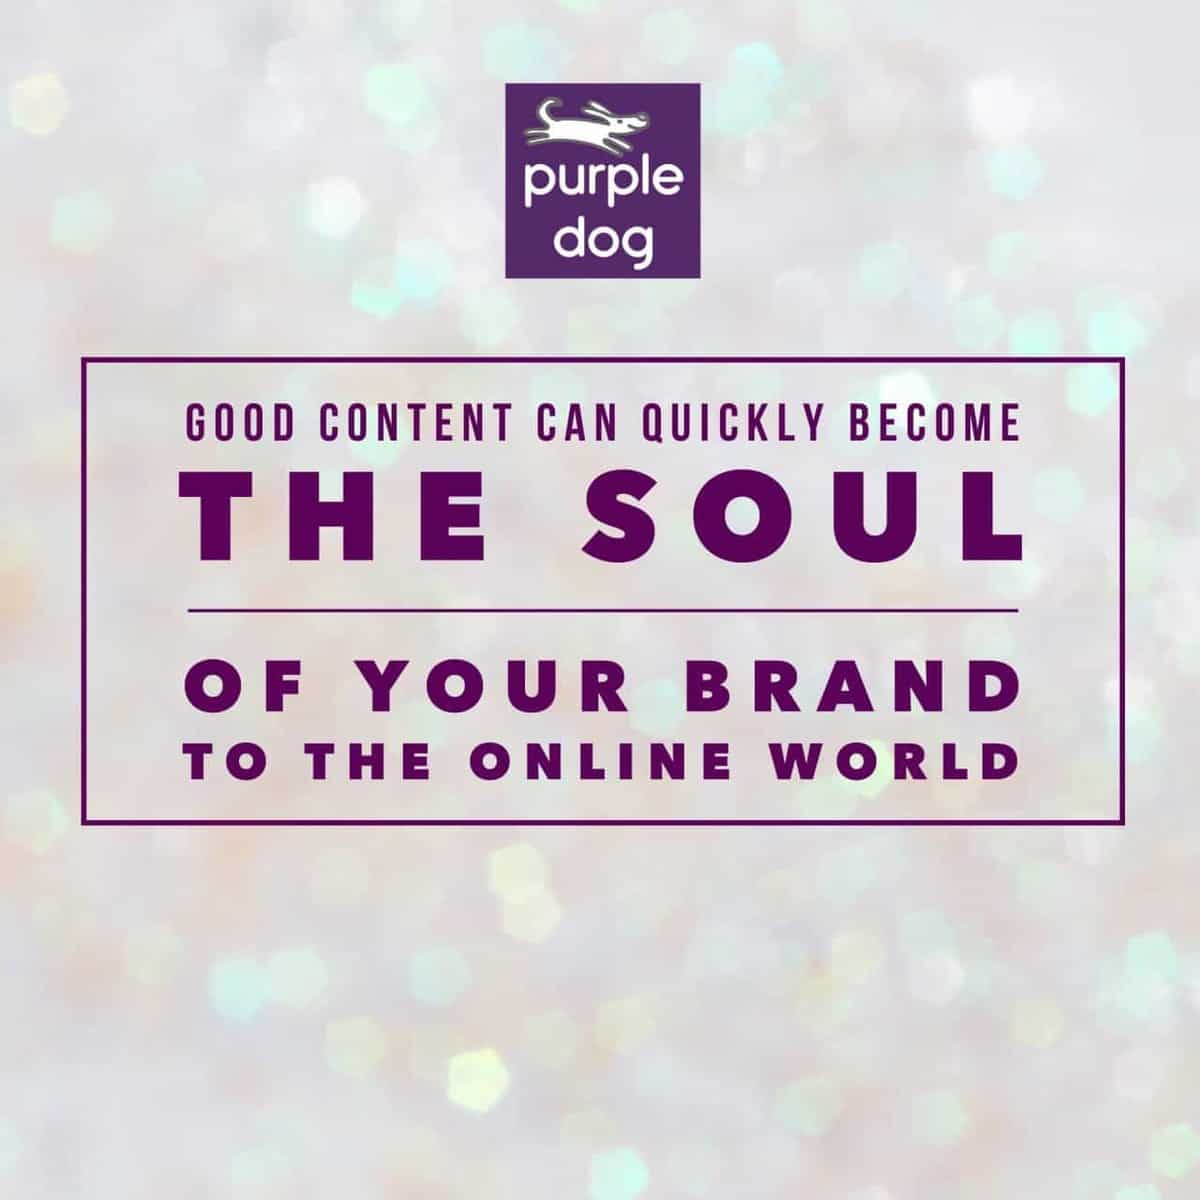 good content marketing can quickly become the sould of your brand to the online world